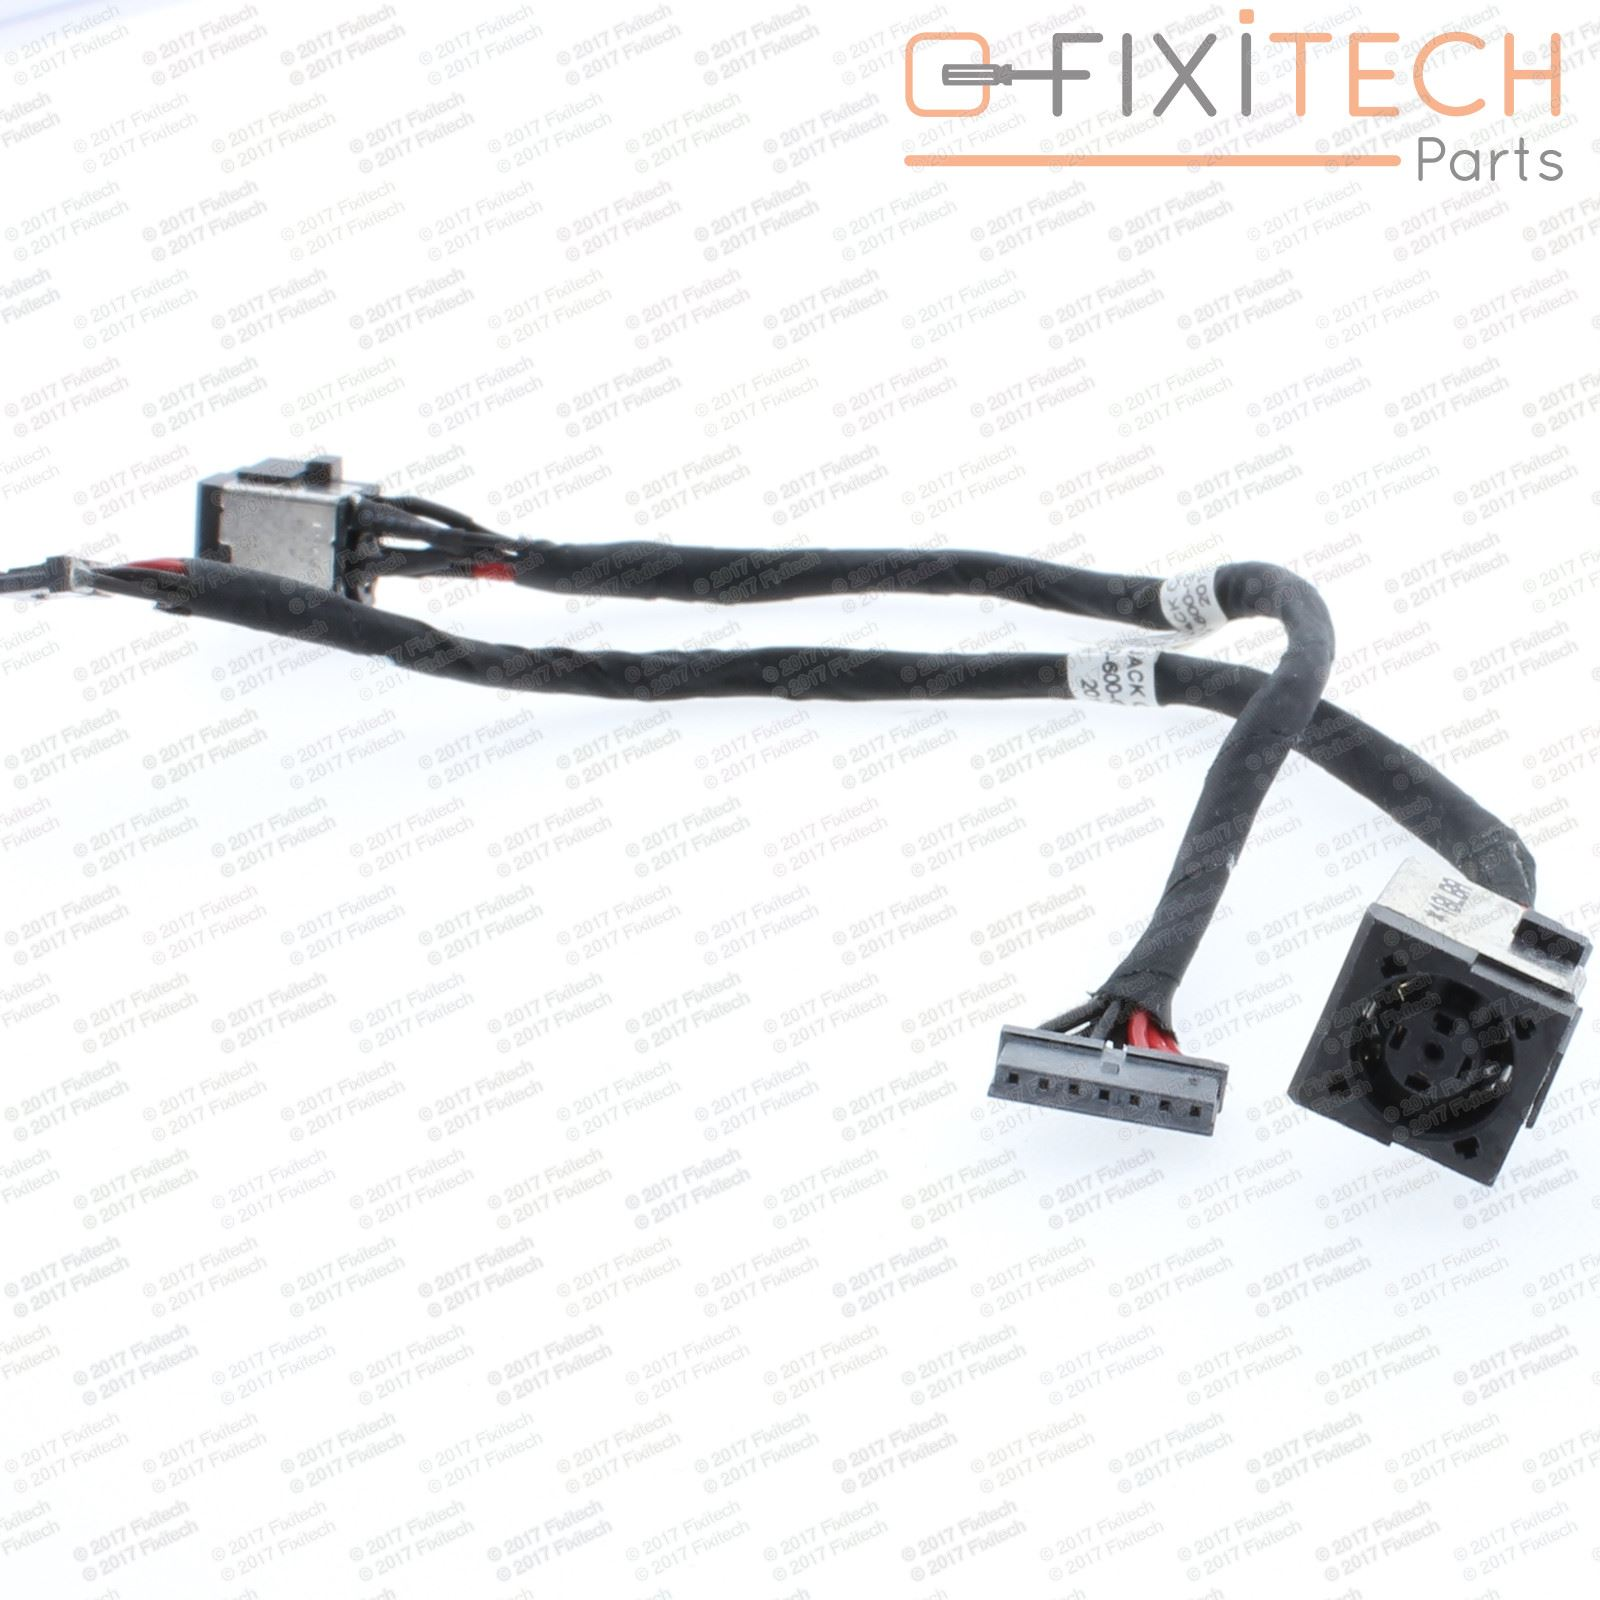 hight resolution of details about hp elitebook 8570w dc in cable power jack port socket with cable connector